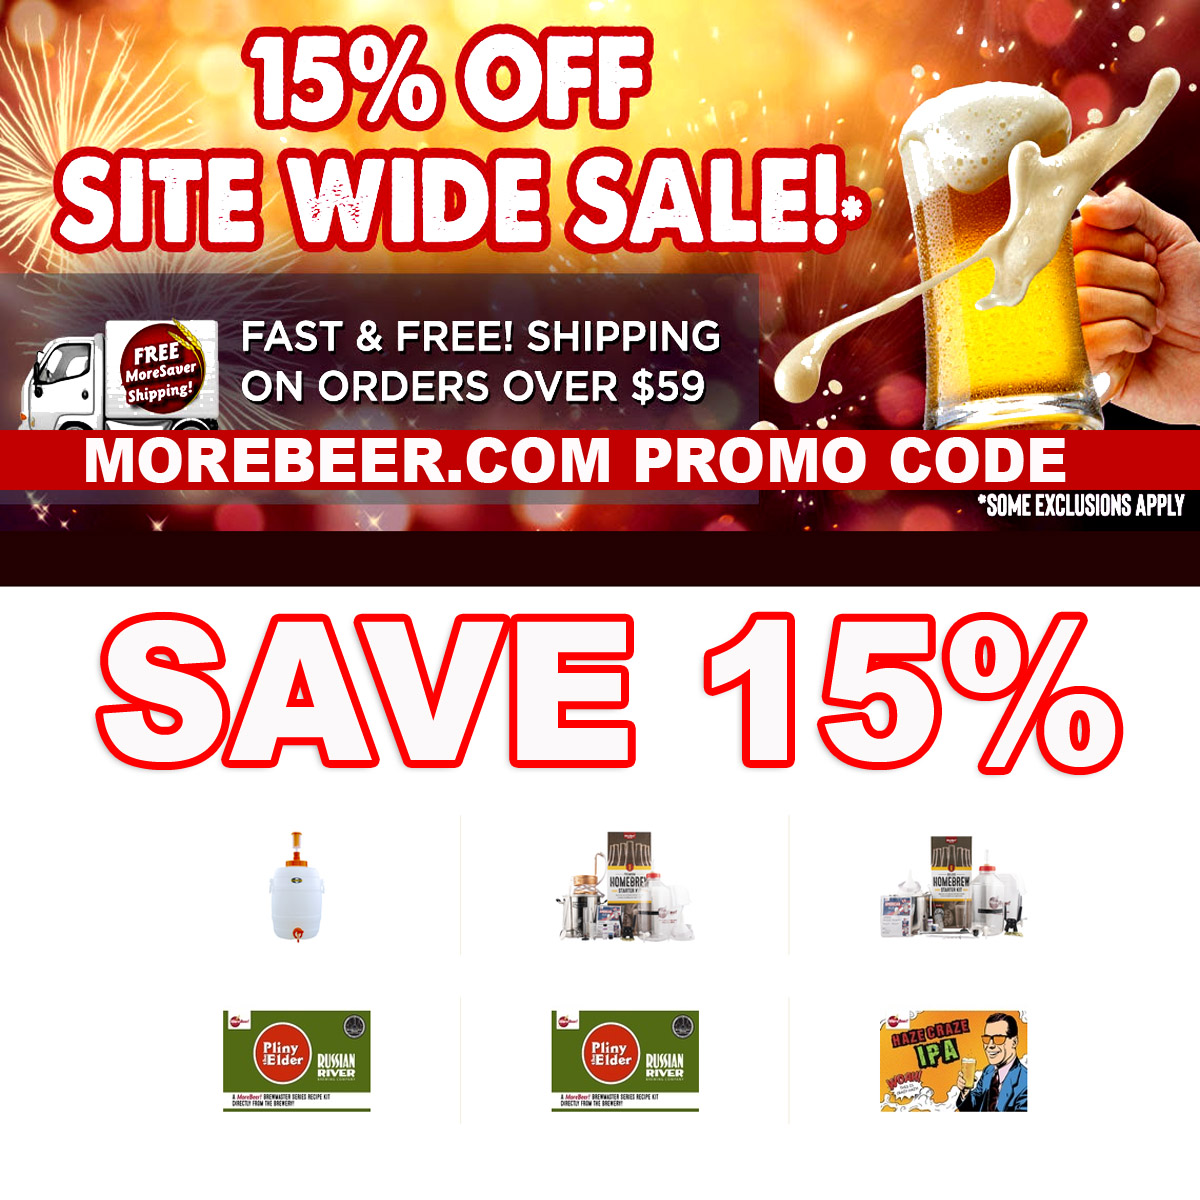 Home Wine Making Coupon Codes for Save 15% Site Wide at More Beer with this MoreBeer.com Promo Code Coupon Code